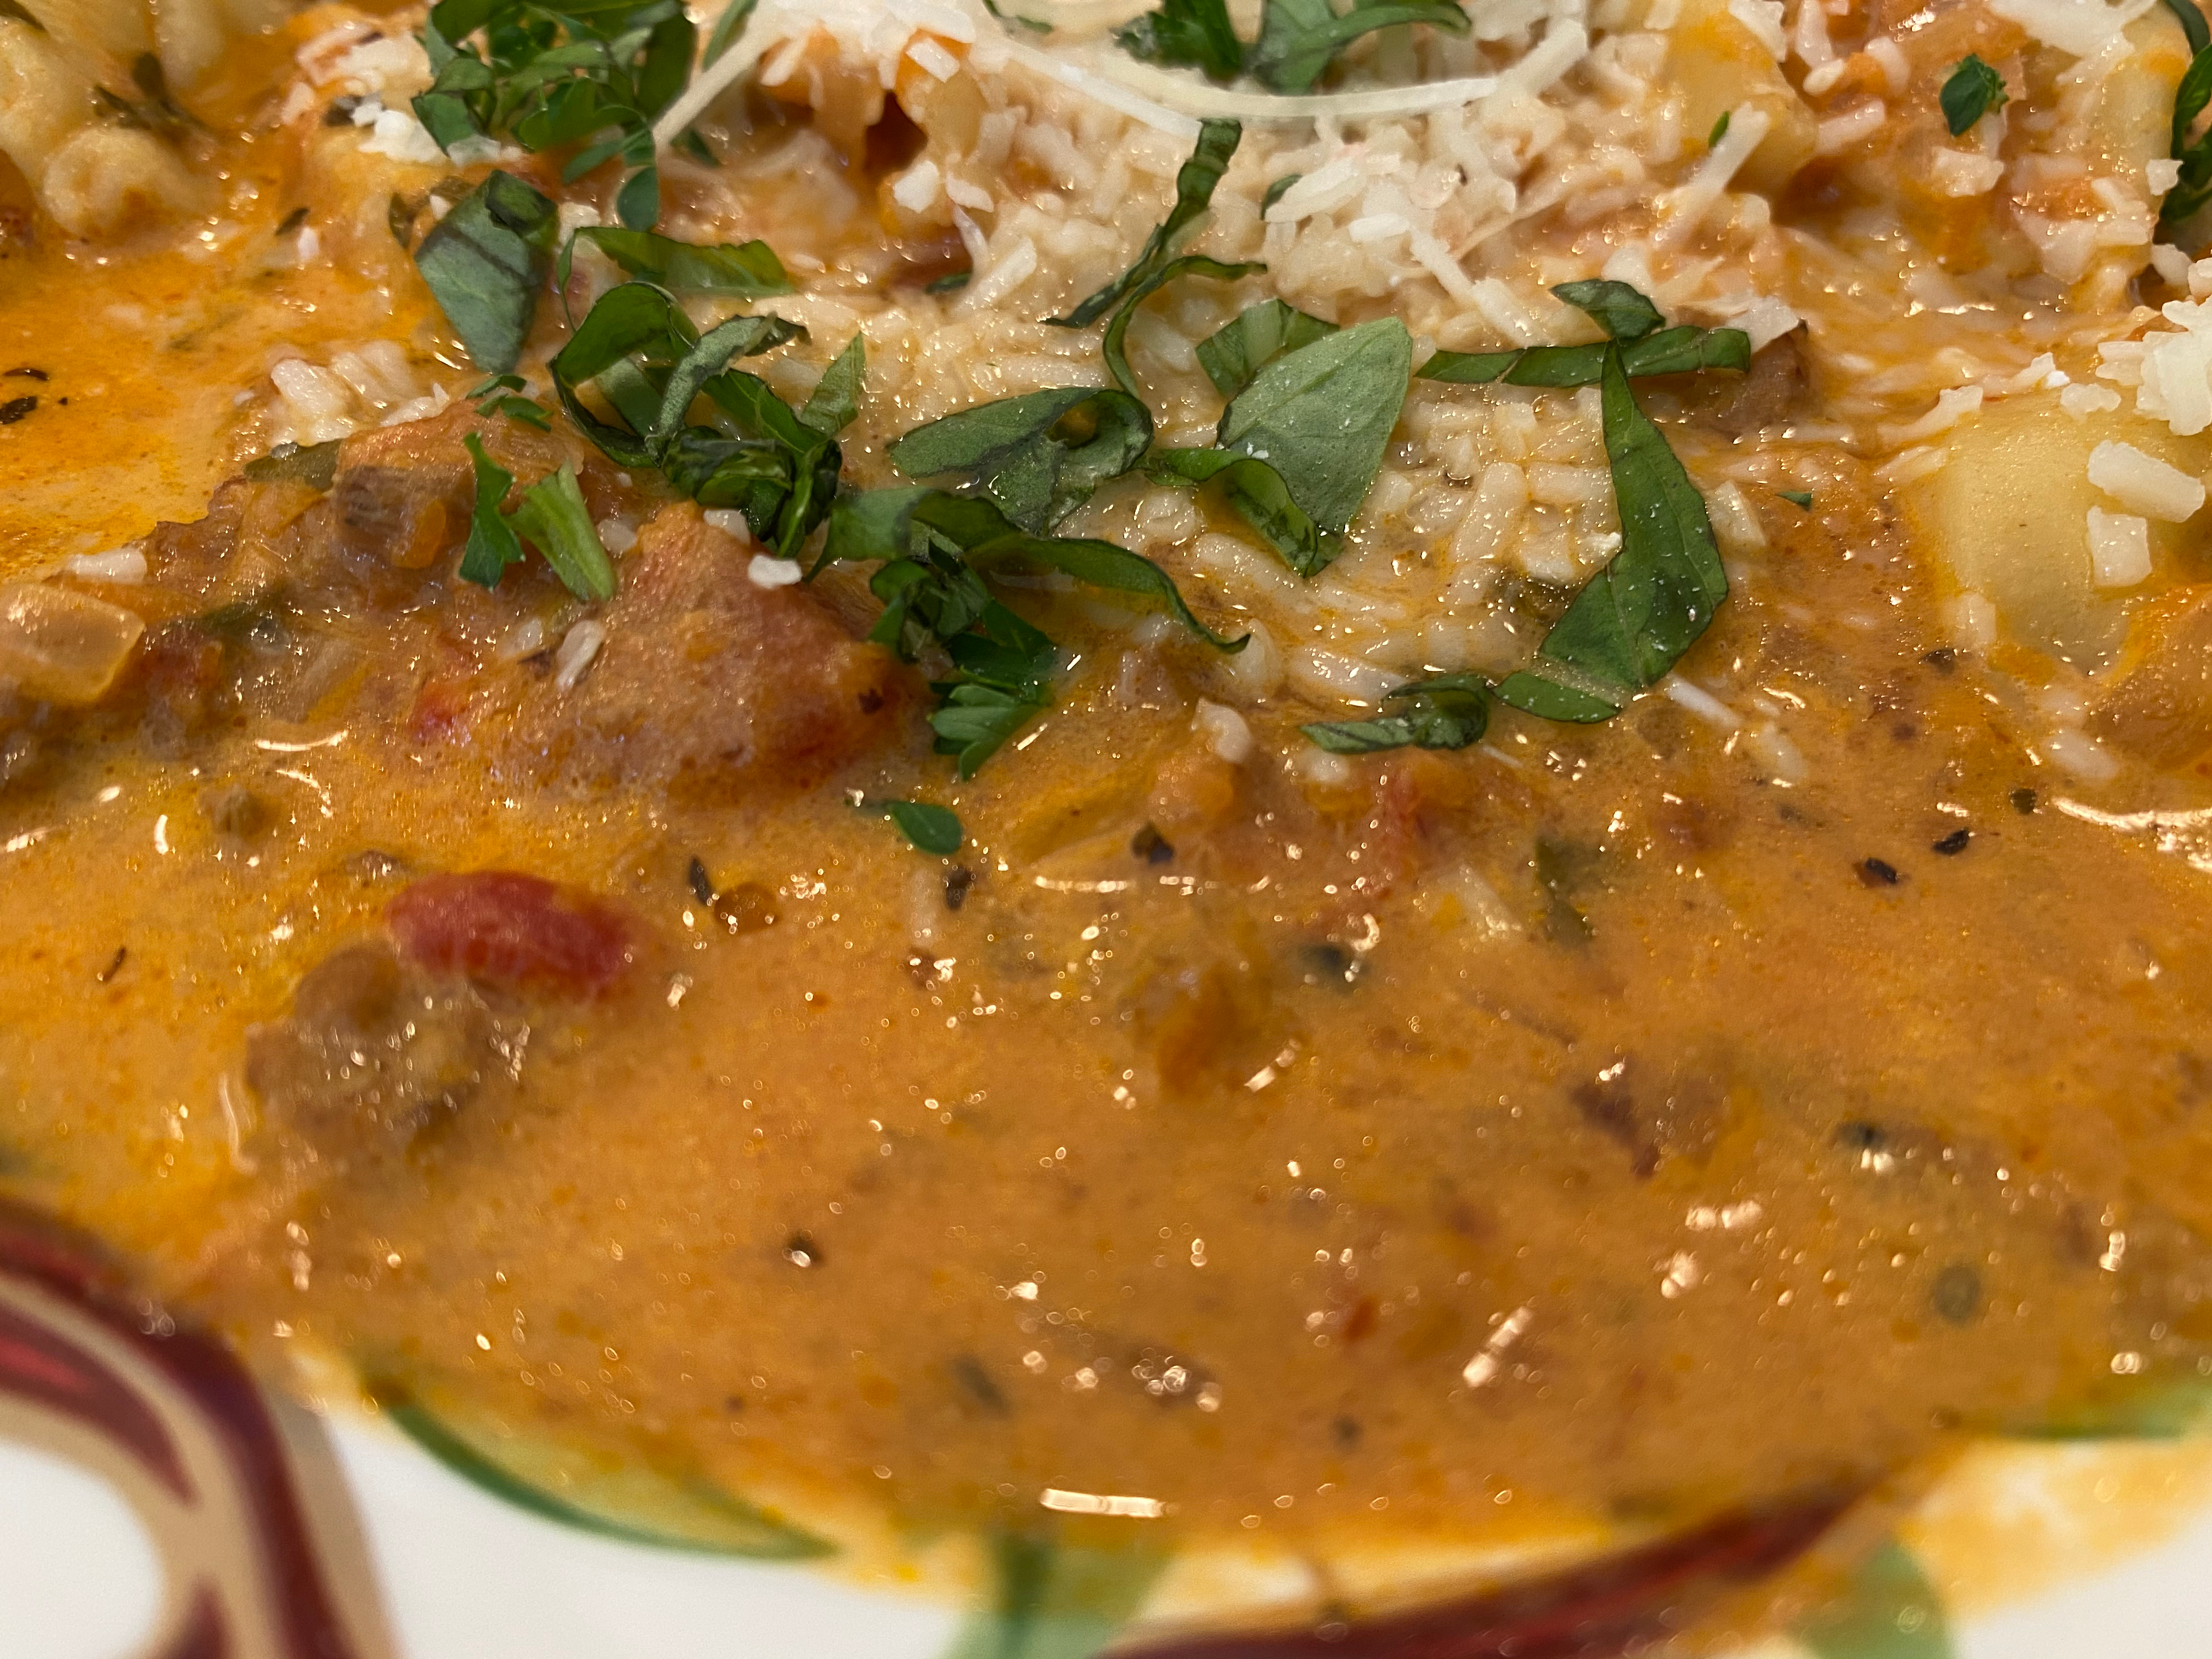 Closeup of Finished Dutch Oven Tortellini Soup with Italian Sausage